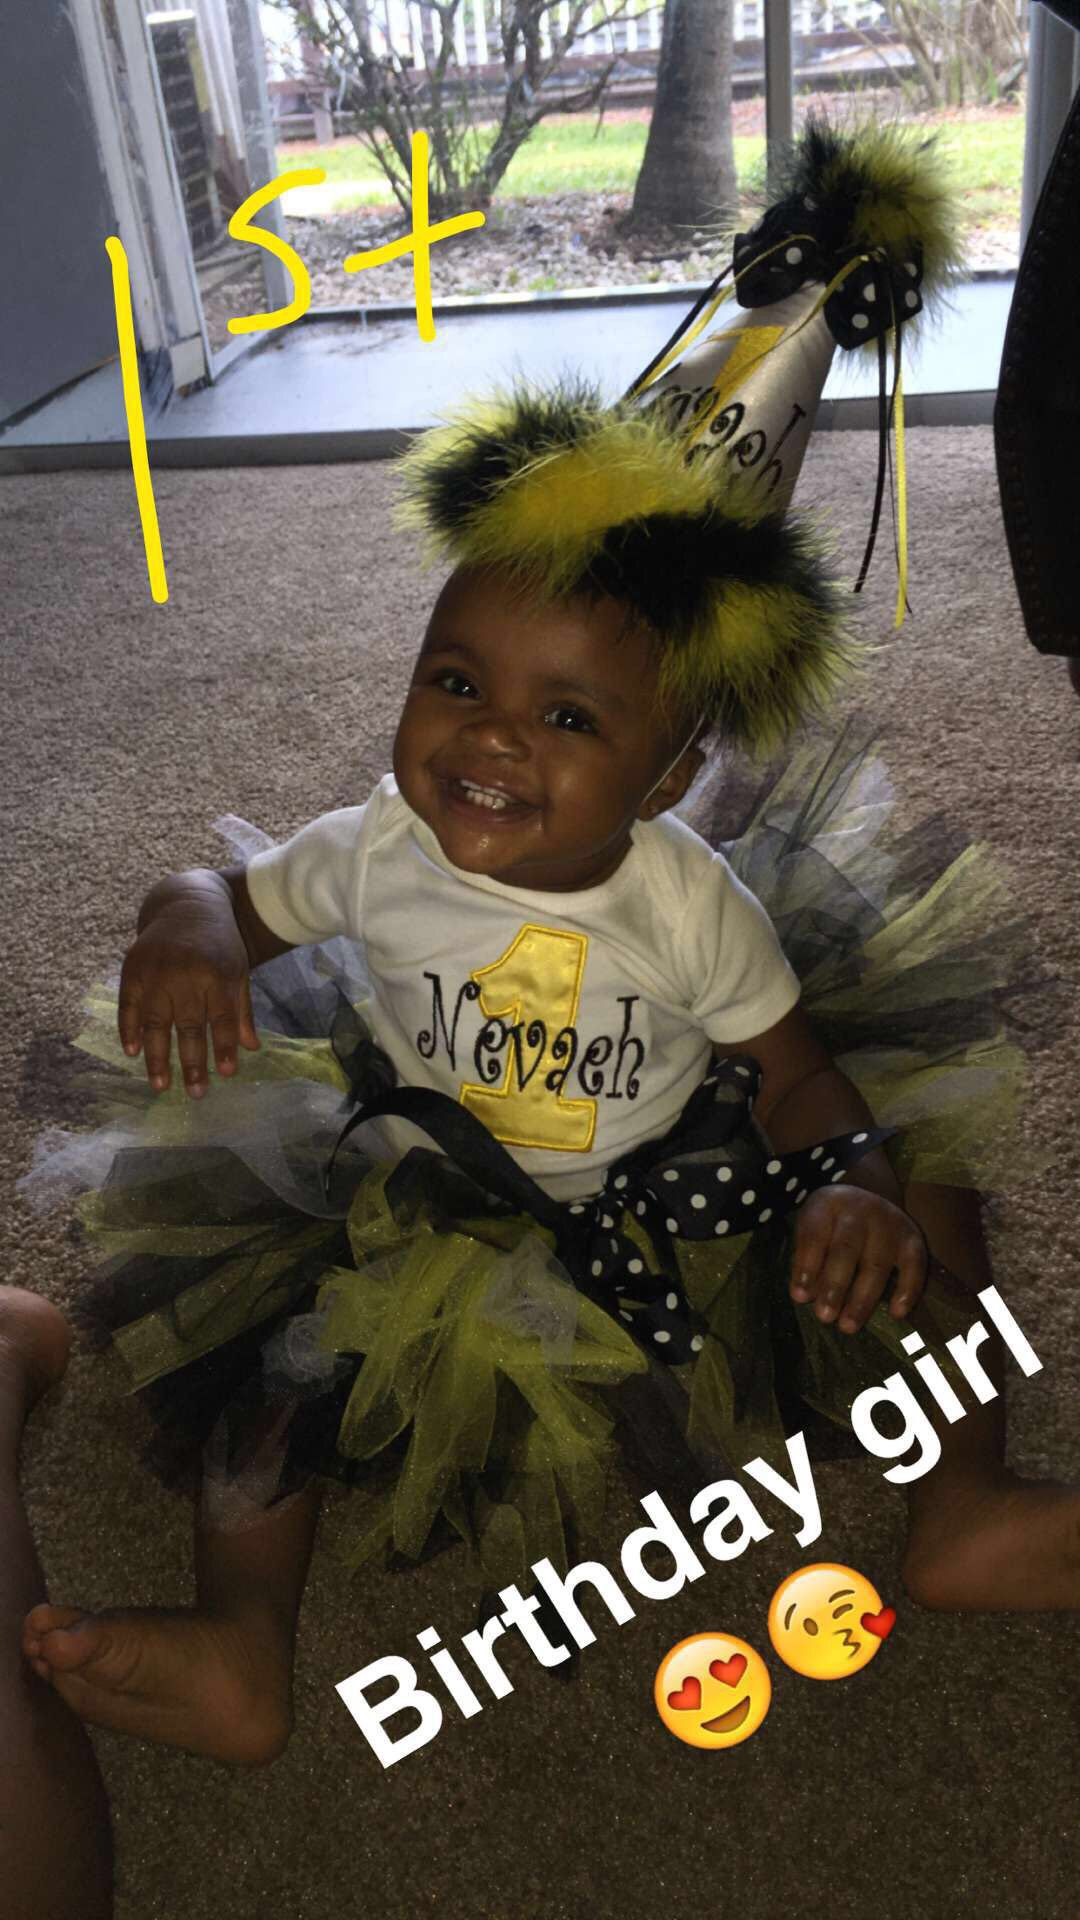 Bumblebee custom outfit. Bumblebee Outfit Custom  Lil girls  Little girls Birthday  1st birthday